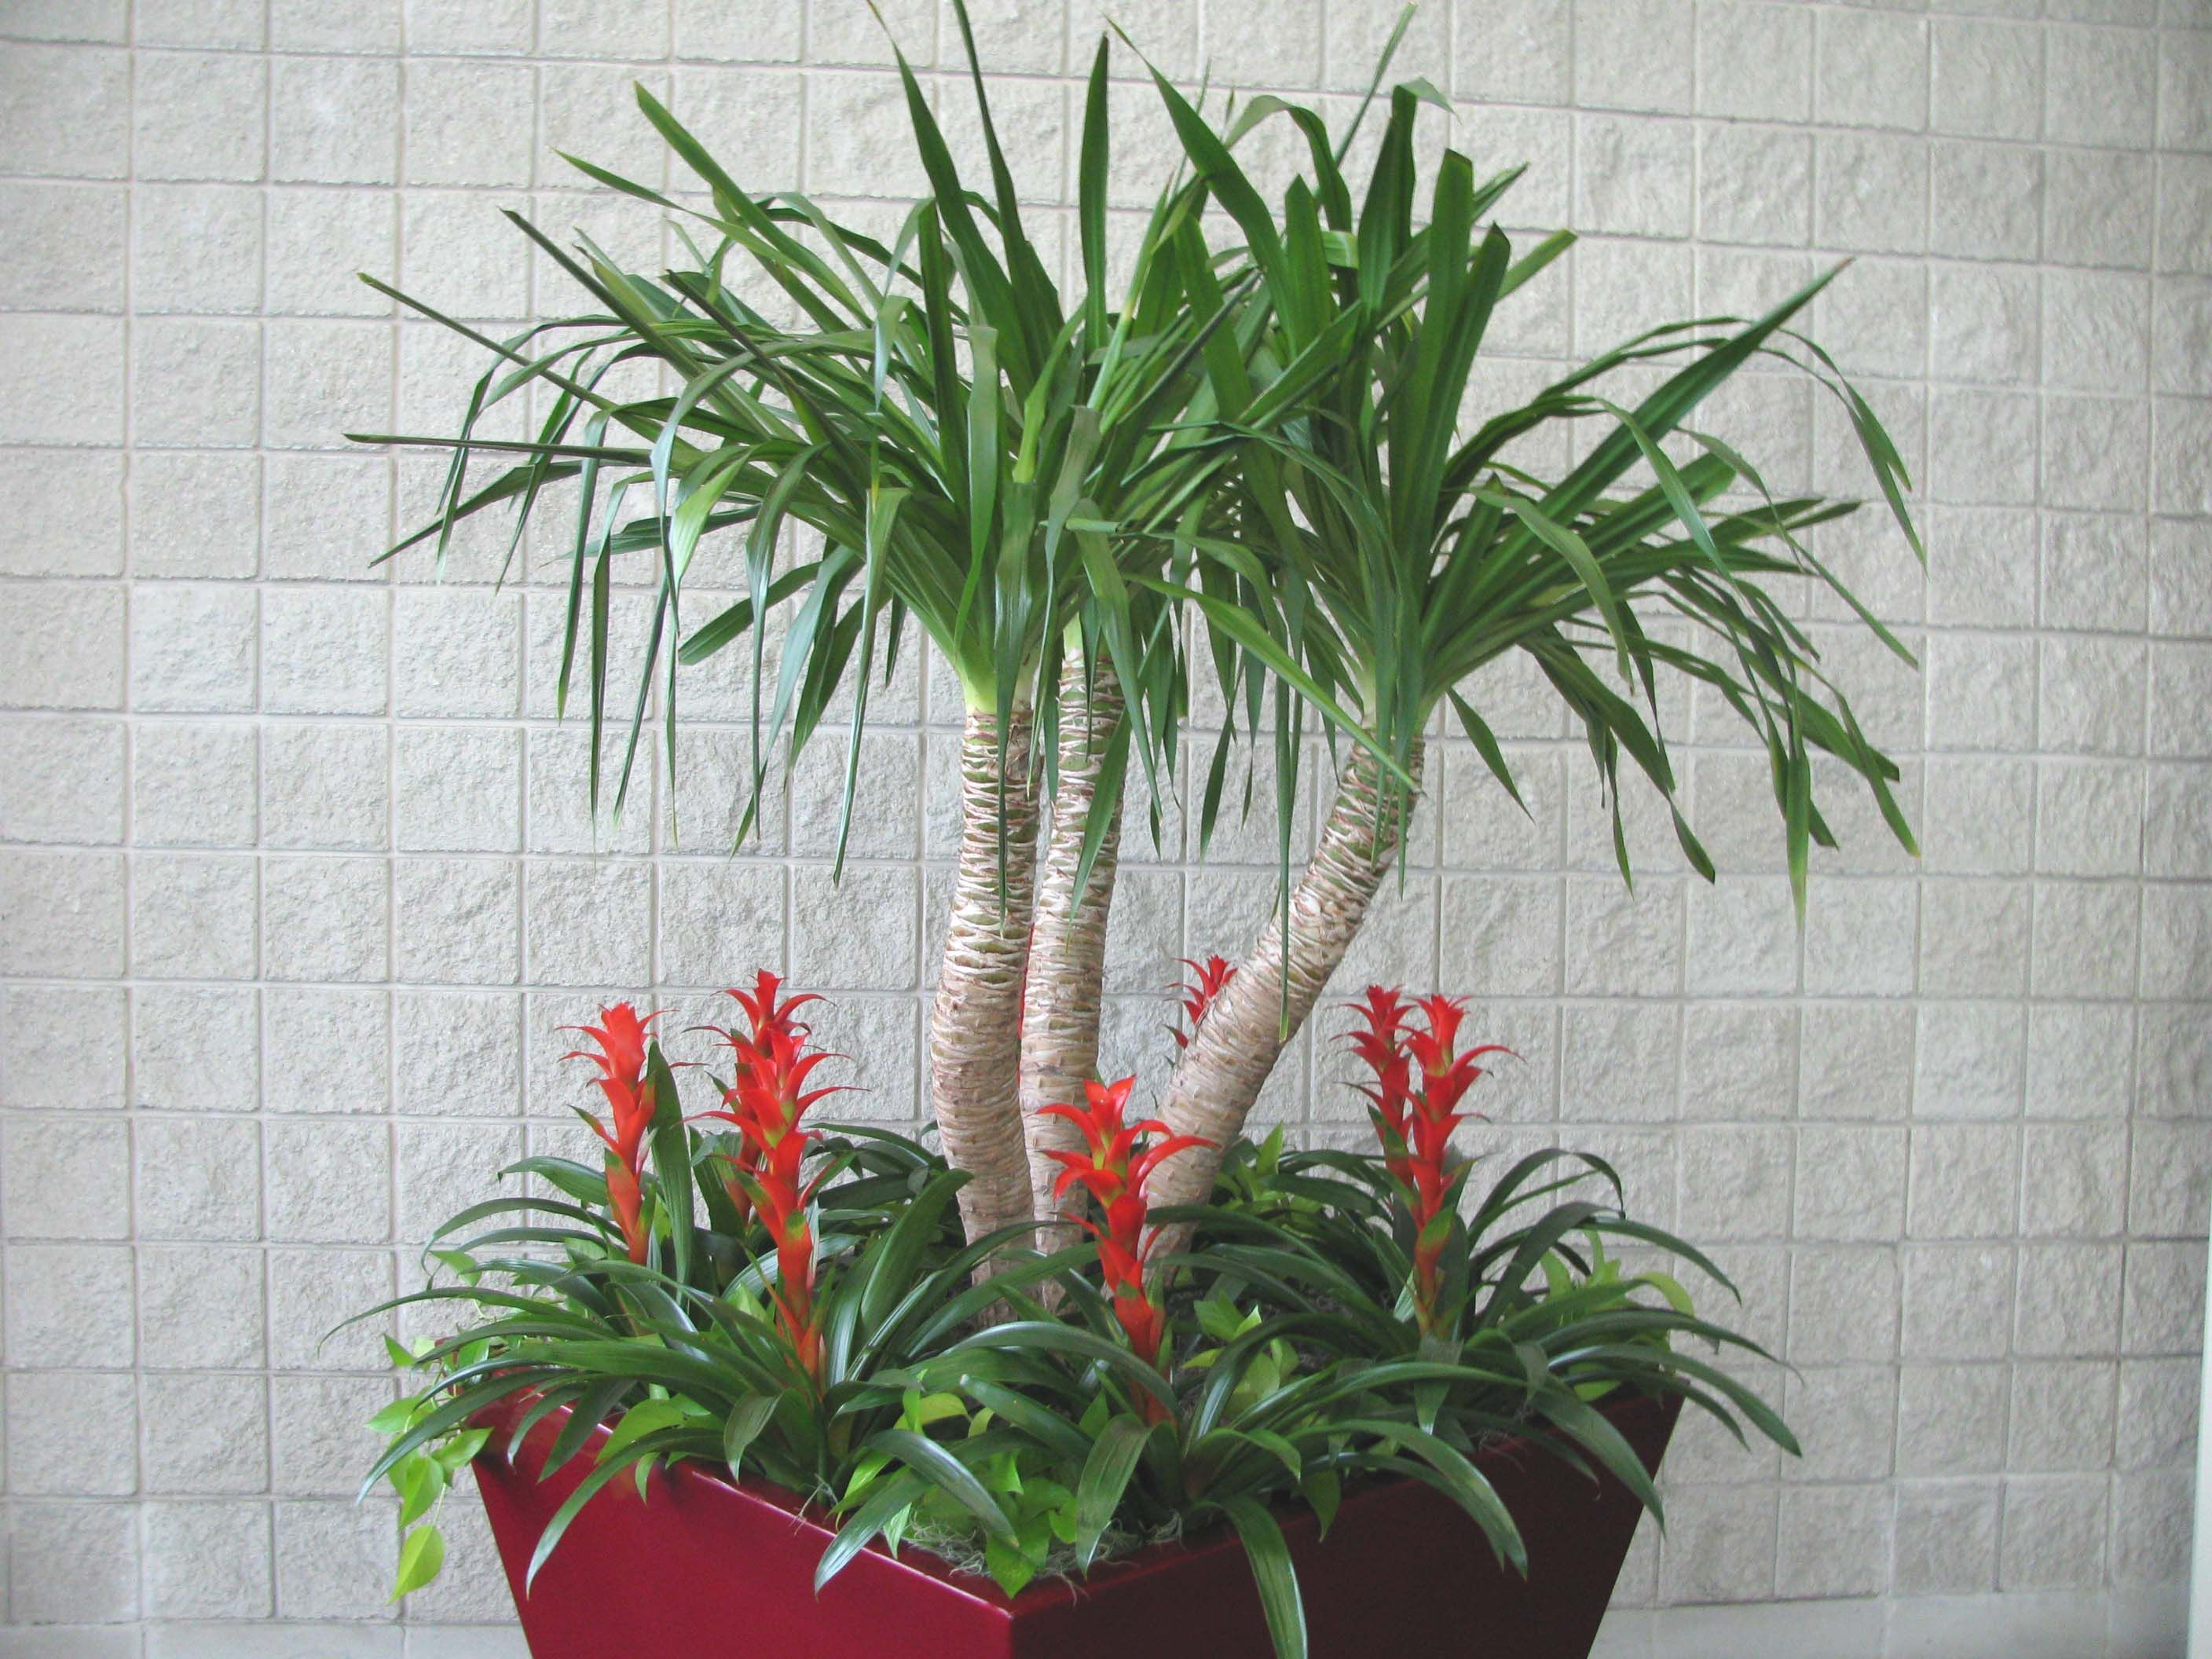 Best Kitchen Gallery: Indoor House Plants How To For Your Indoor Plants Links of Tropical House Plants For Sale  on rachelxblog.com